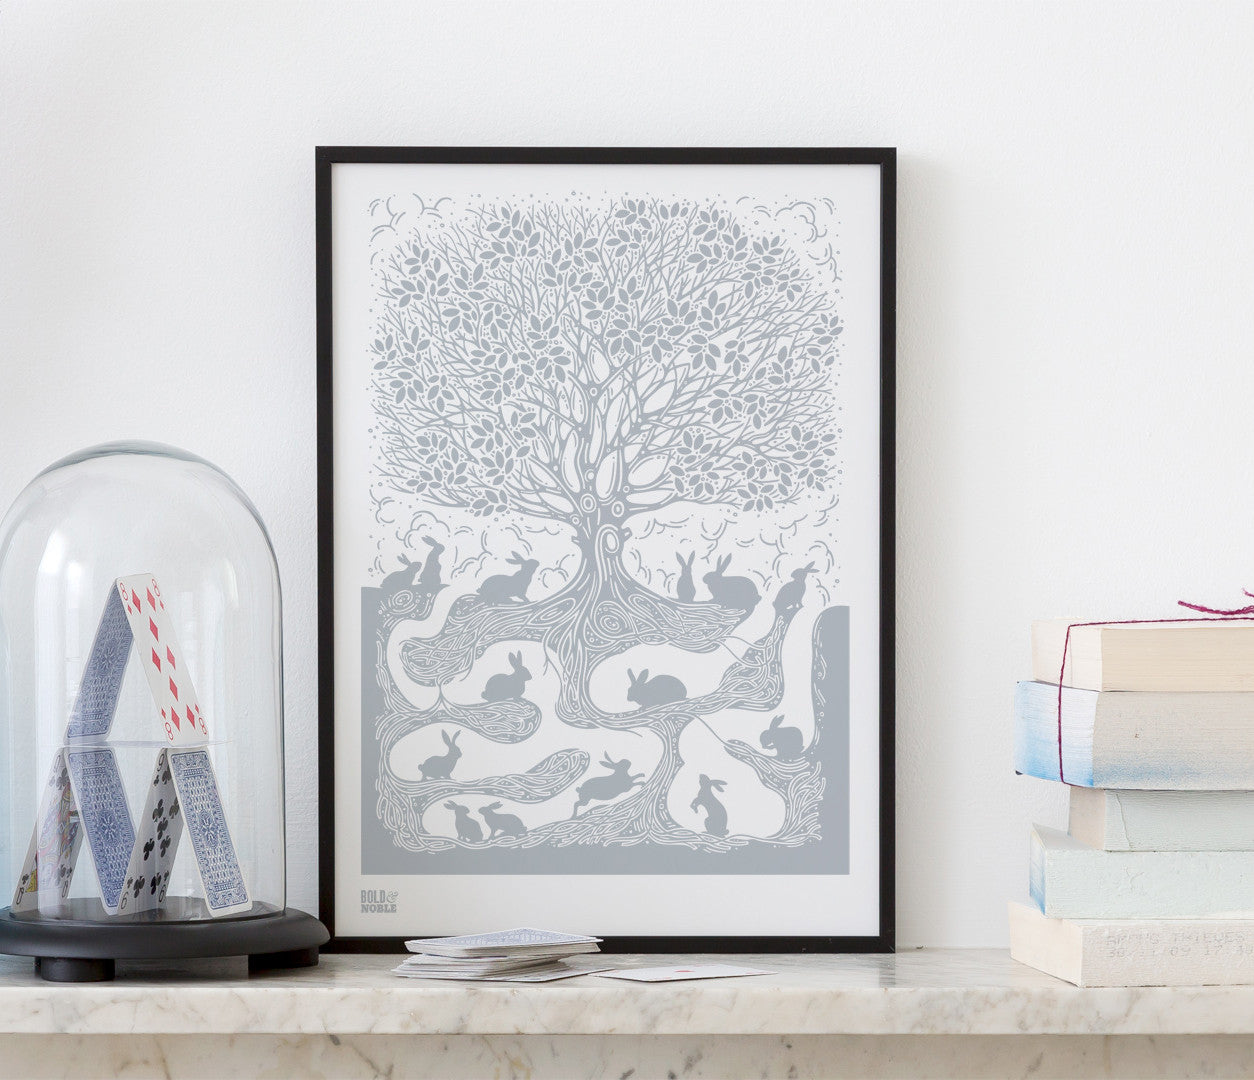 Pictures and wall art, screen printed Burrow poster in warm grey